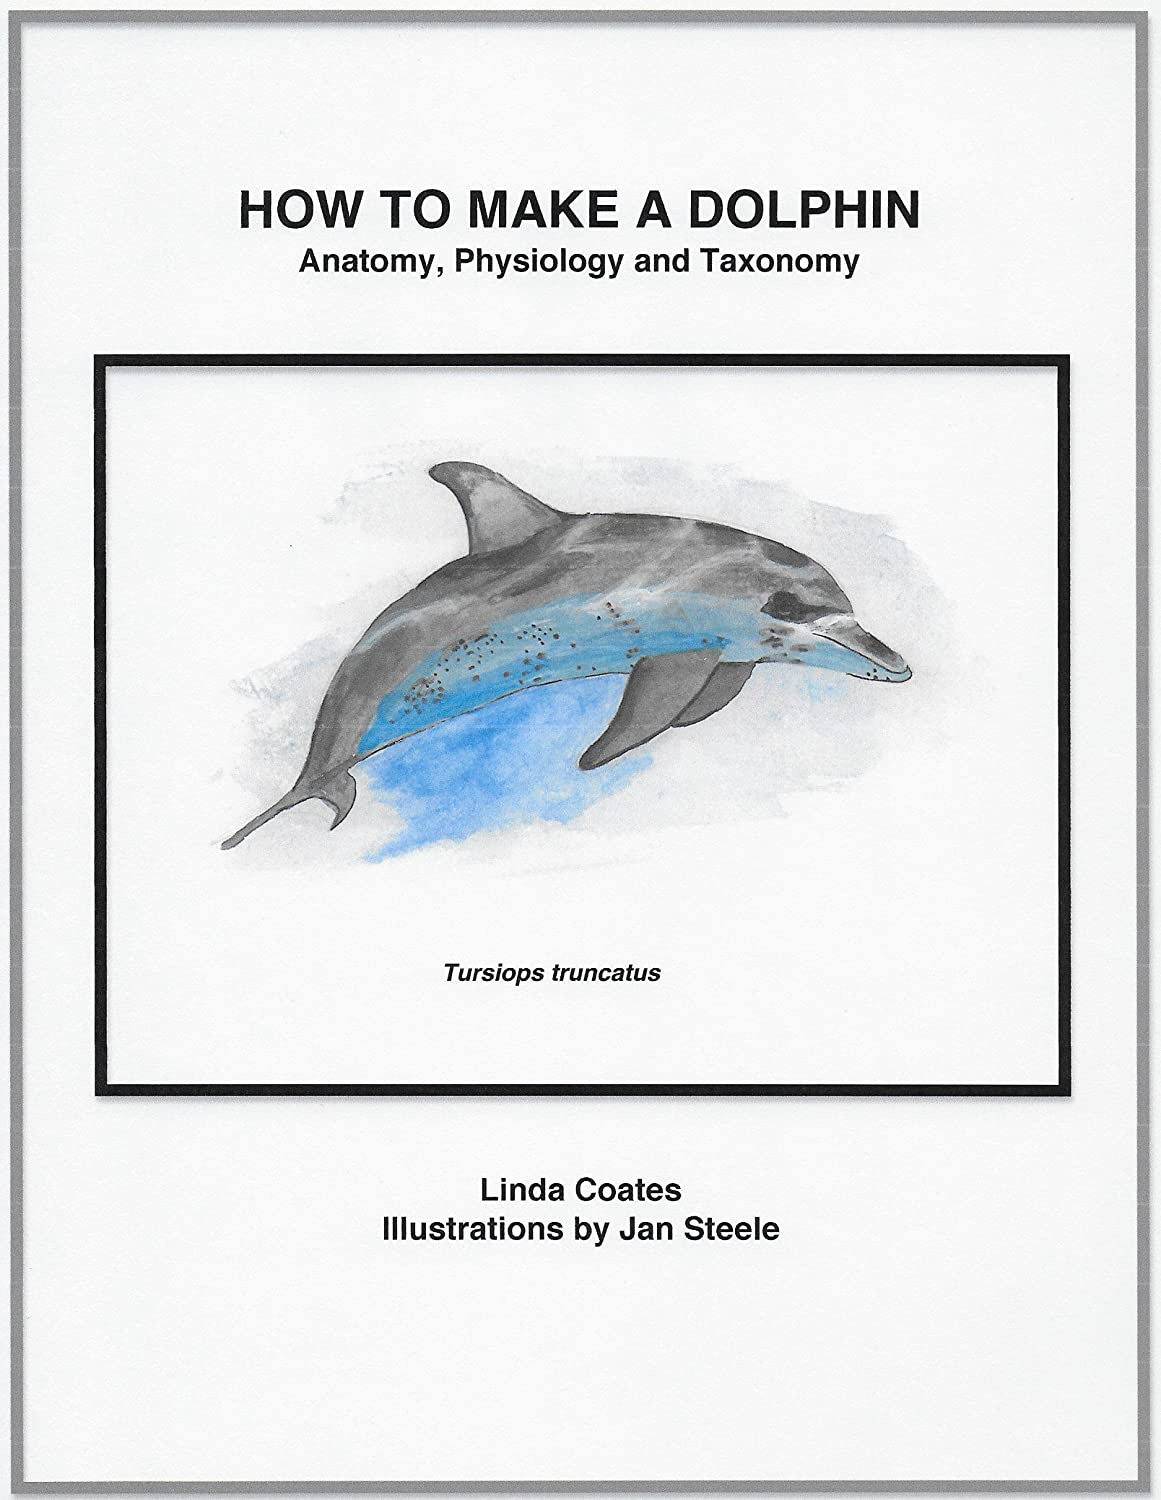 How to Make a Dolphin: Anatomy, Physiology and Taxonomy - Kindle ...